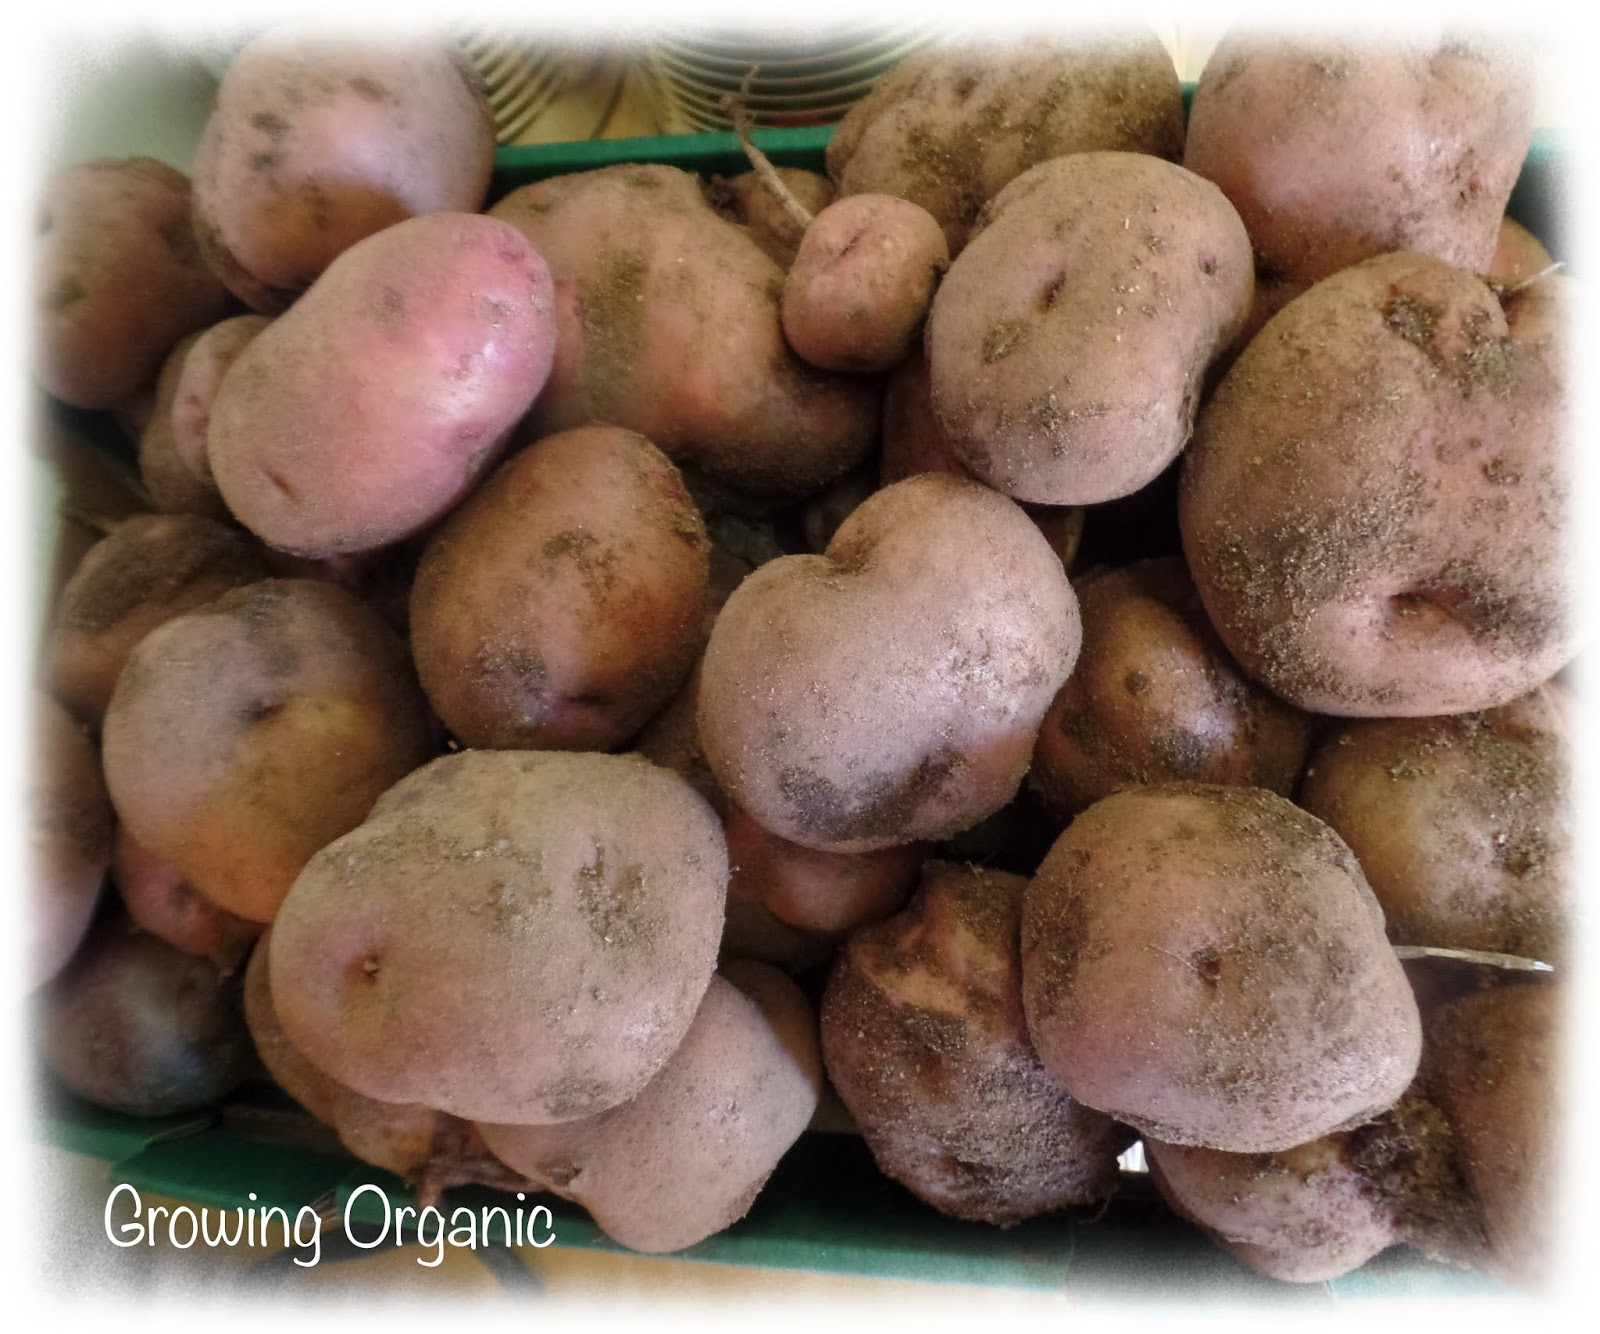 Growing Organic : How To Store Potatoes